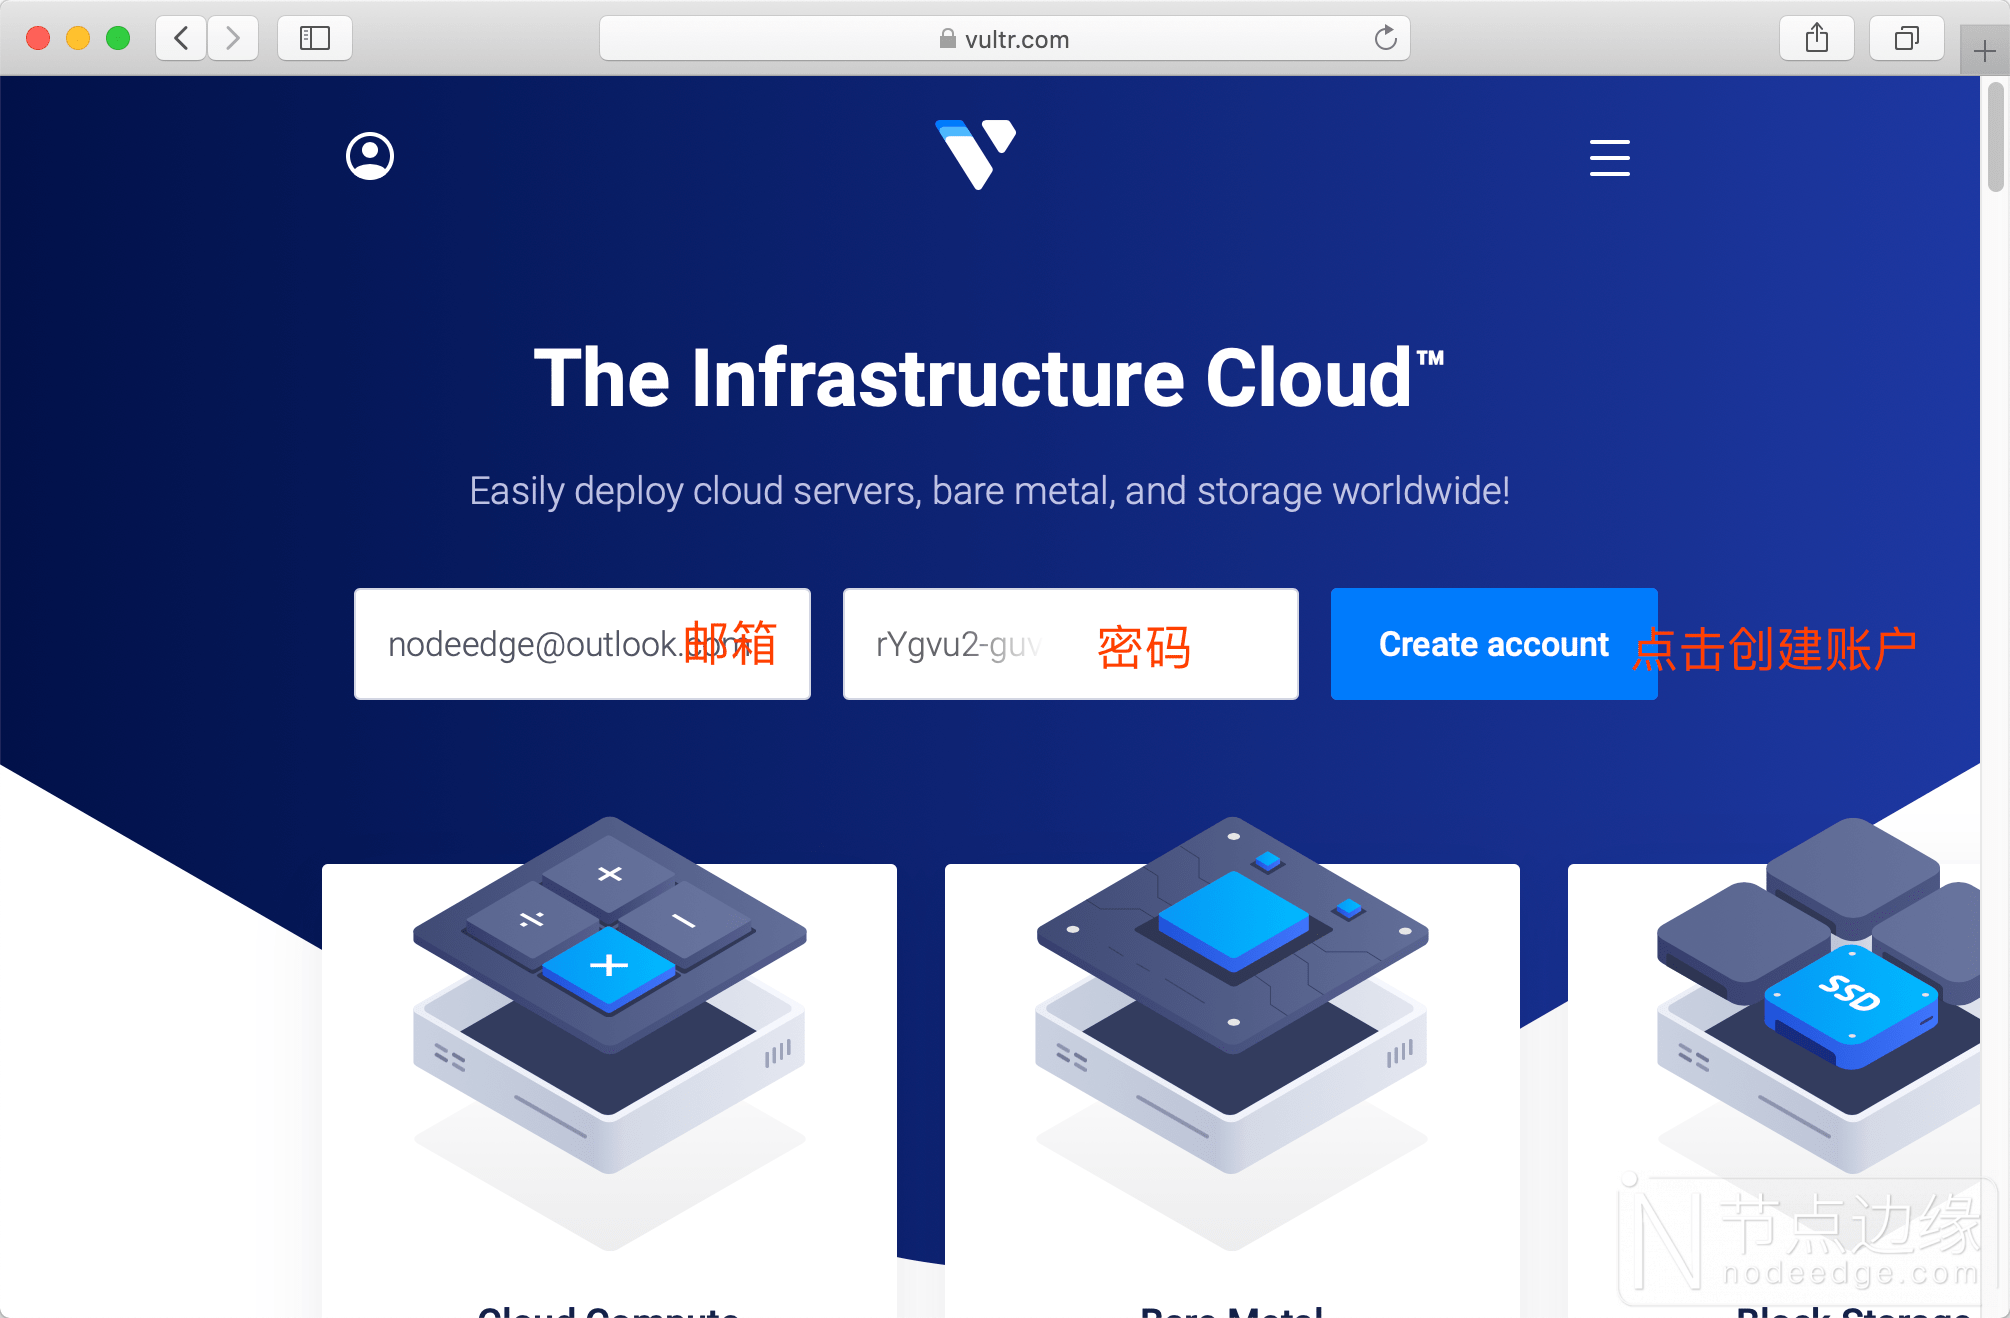 vultr-create-account.png